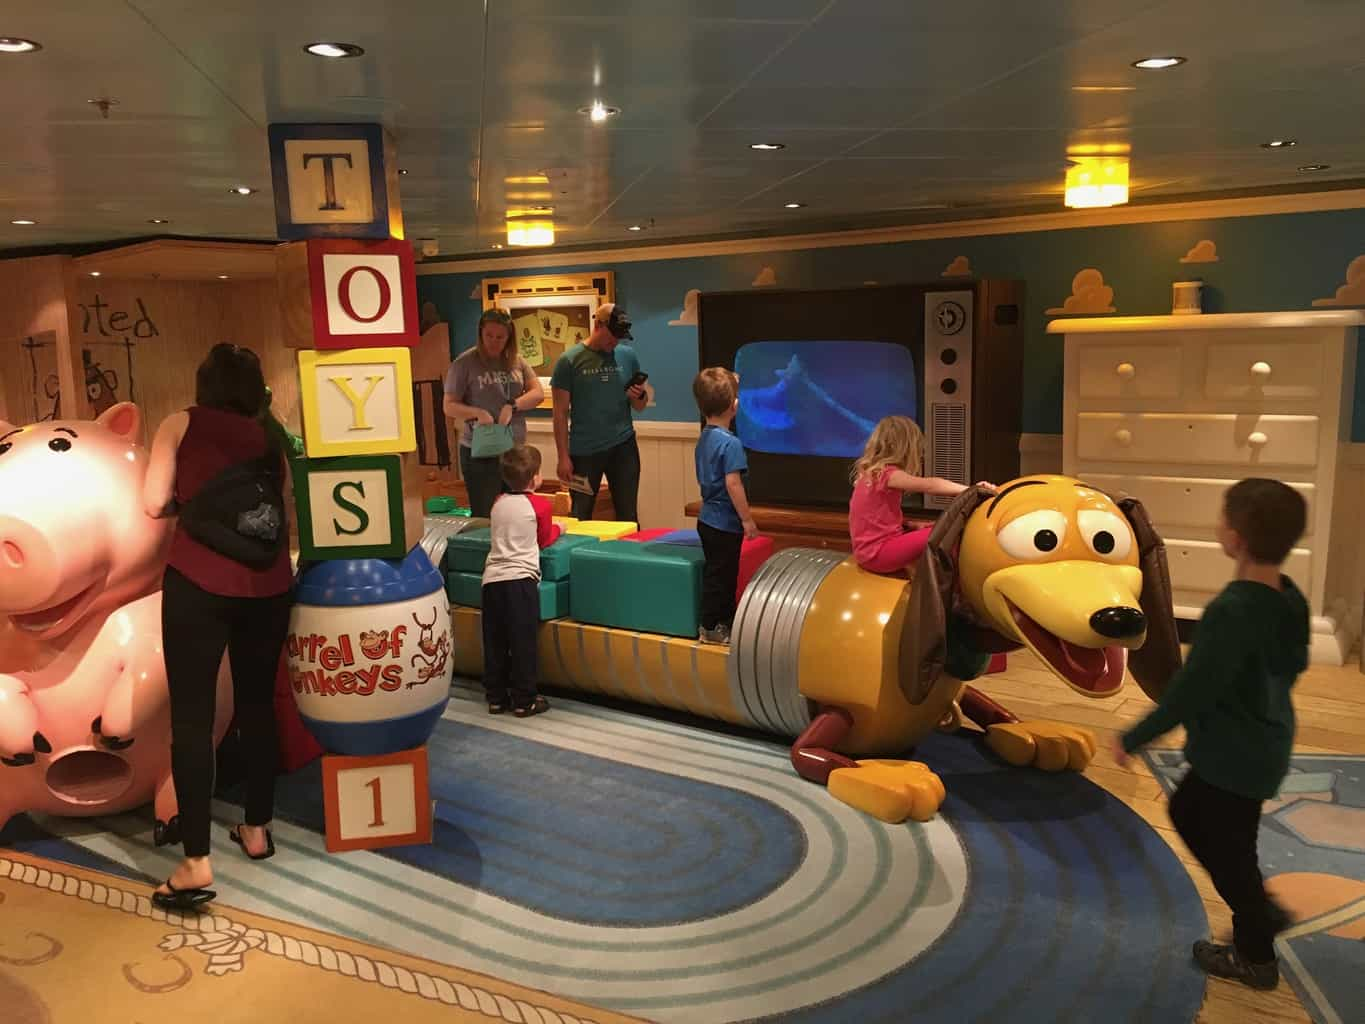 Life Size Version of Andy's Room from Toy Story Onboard the Disney Fantasy Cruise Ship